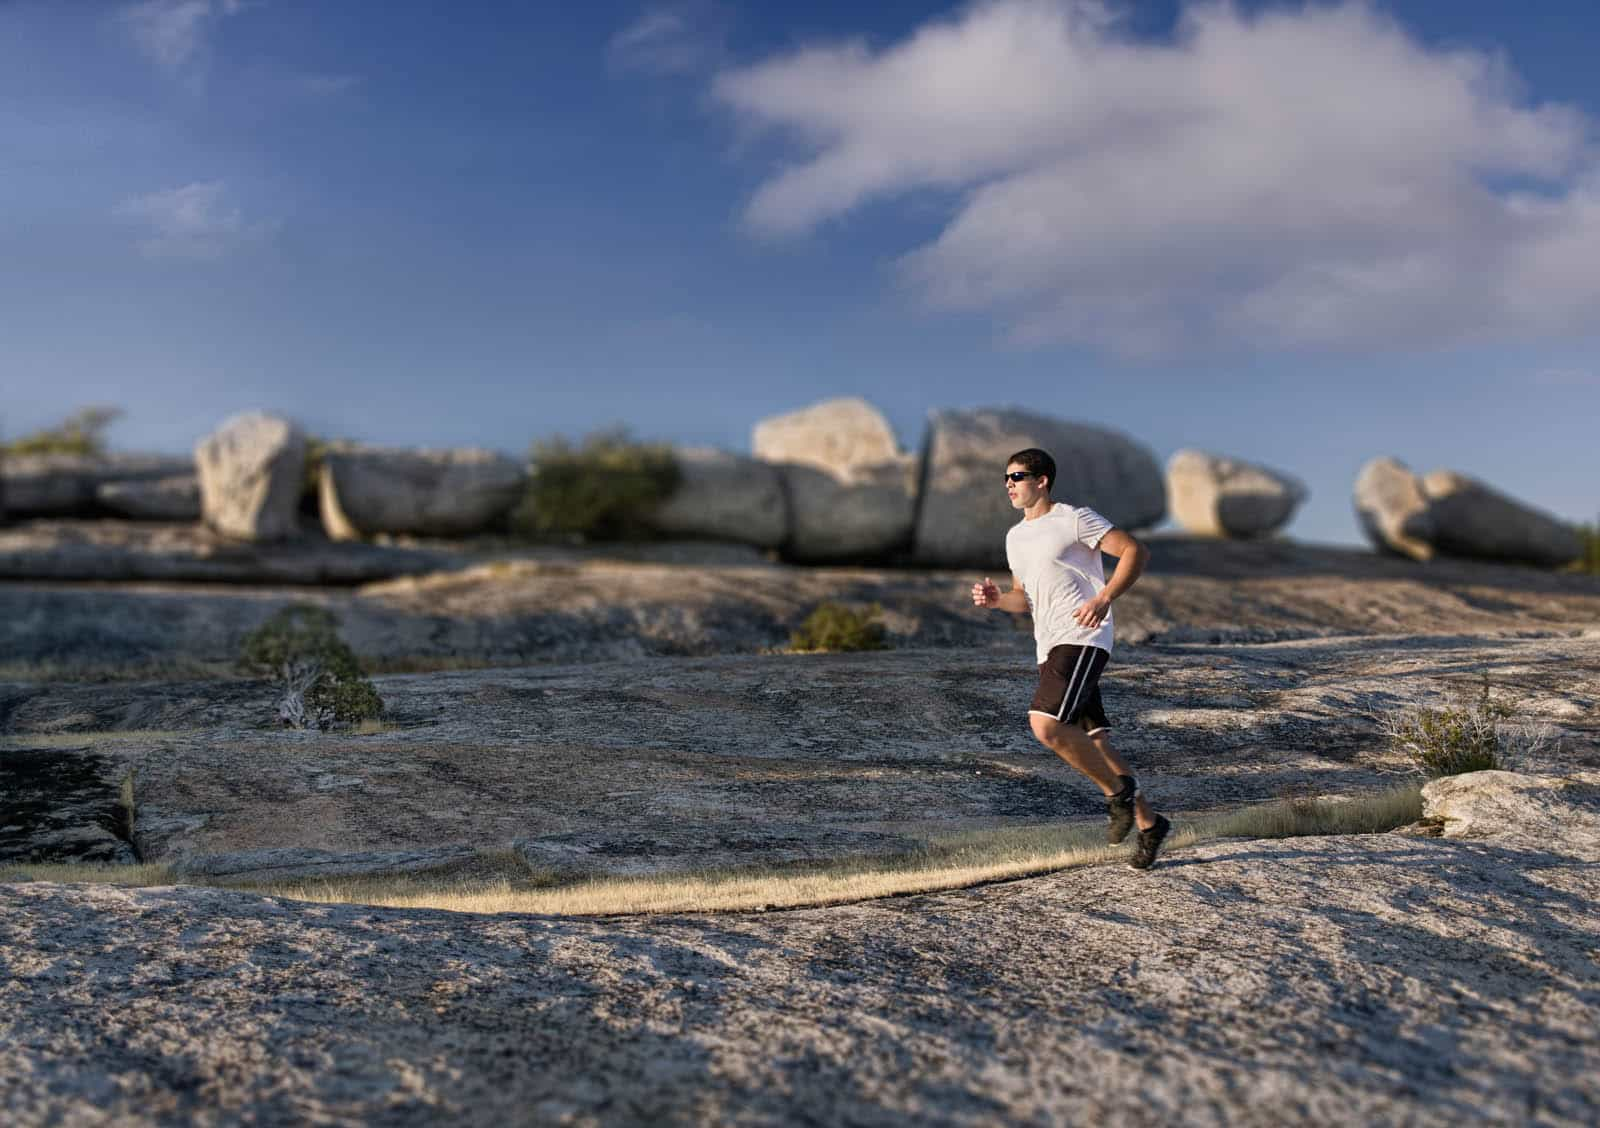 Running in a remote location